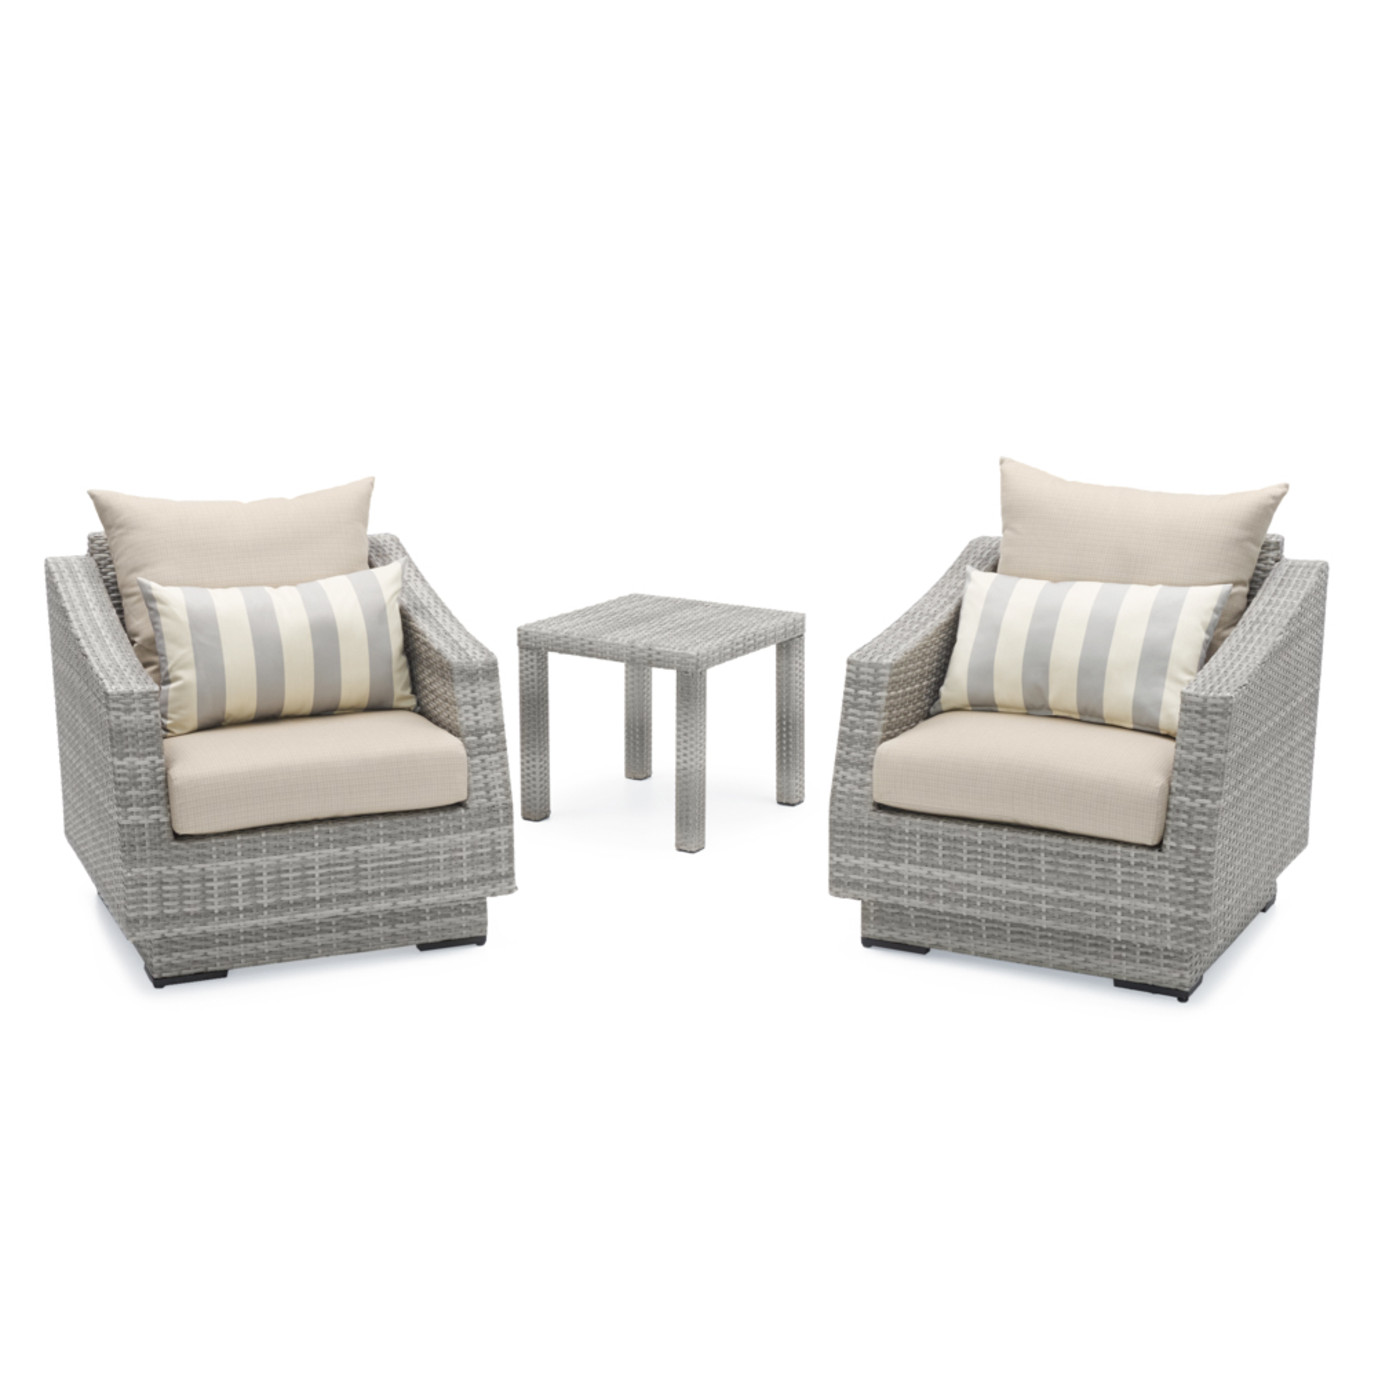 Cannes™ Club Chairs and Side Table - Slate Gray